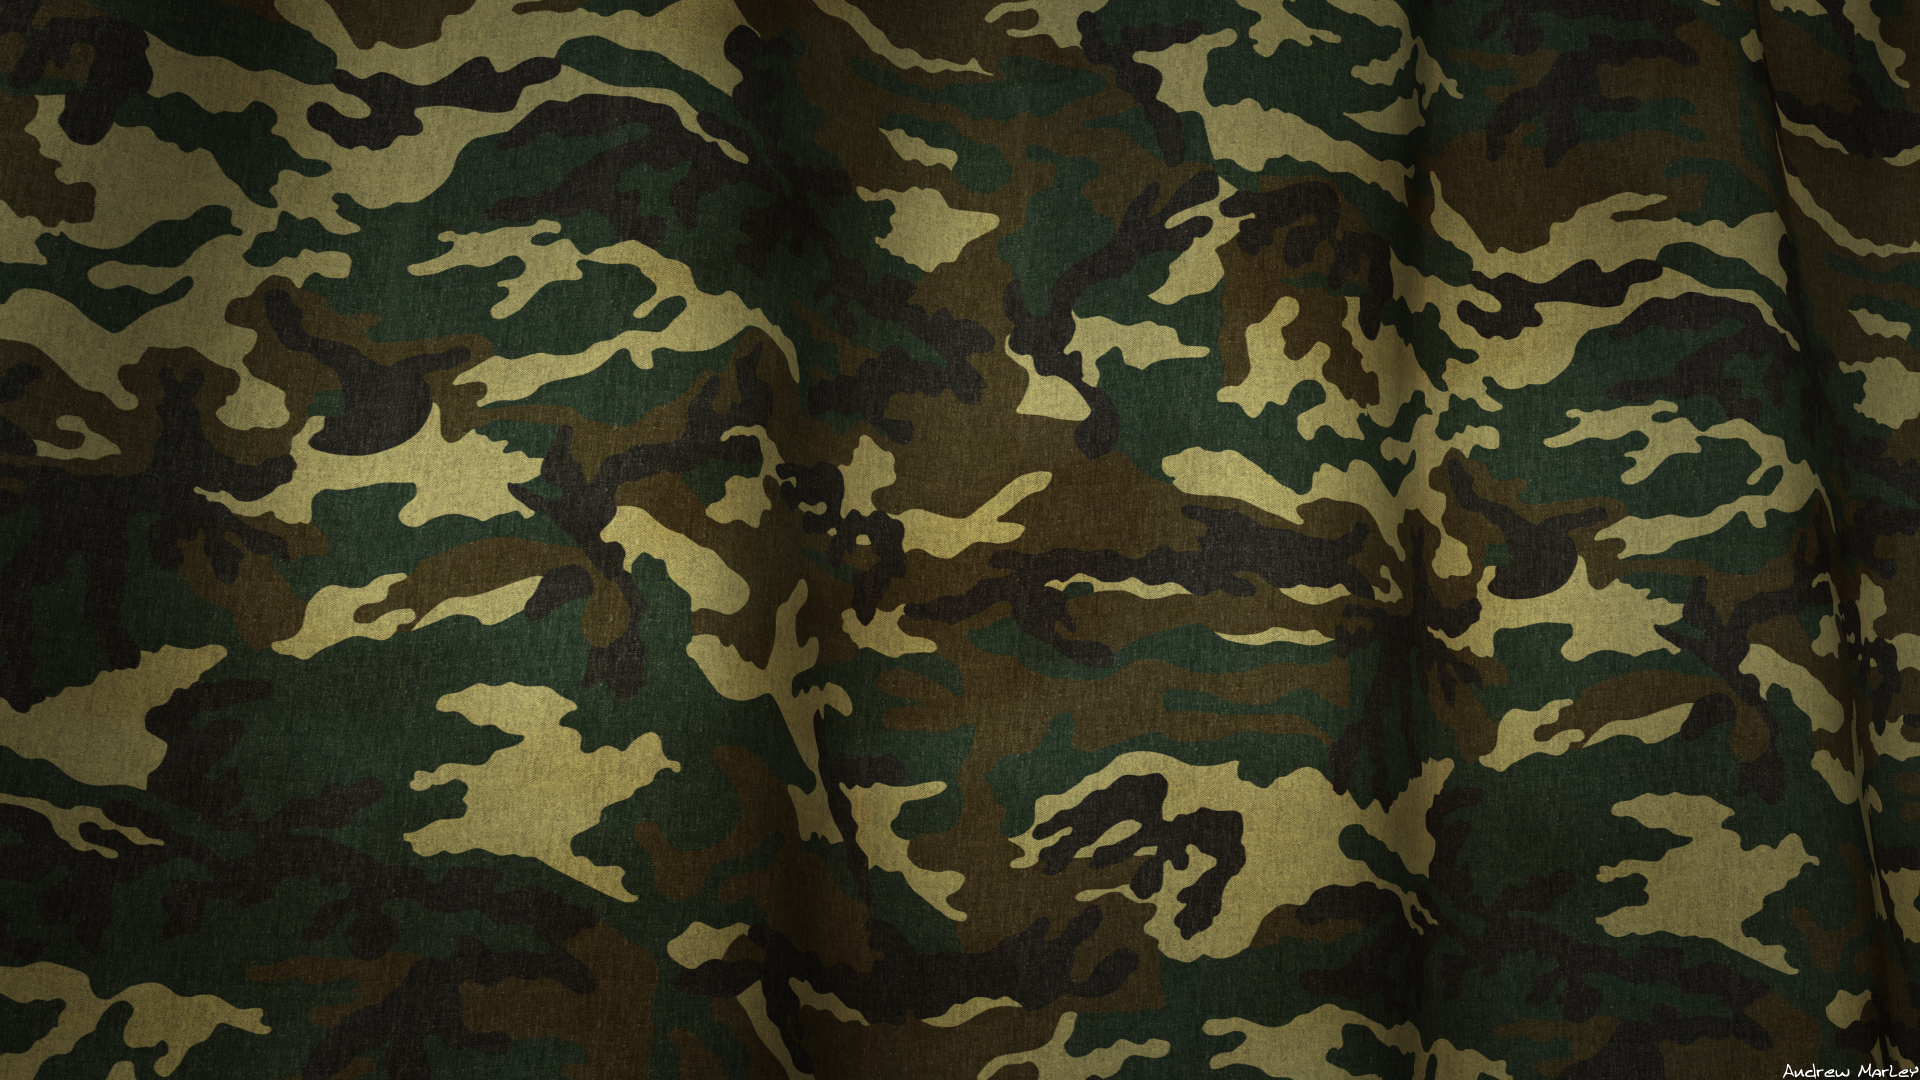 Camo Wallpaper Hd wallpaper   986577 1920x1080